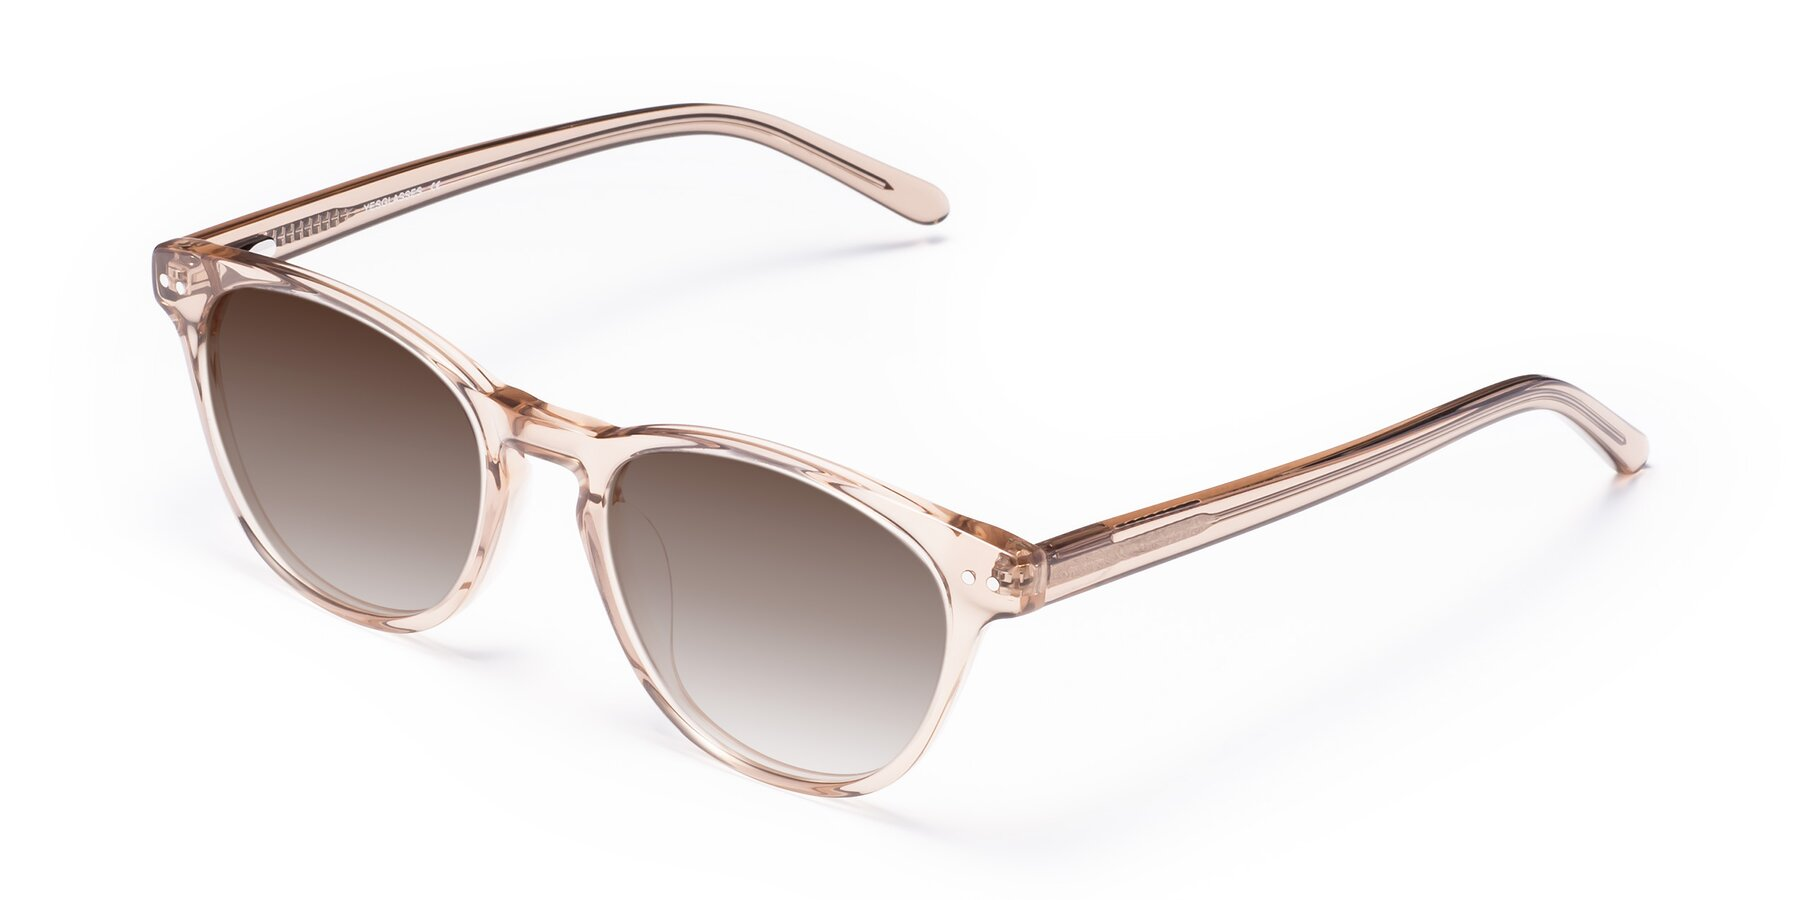 Angle of Blaze in light Brown with Brown Gradient Lenses